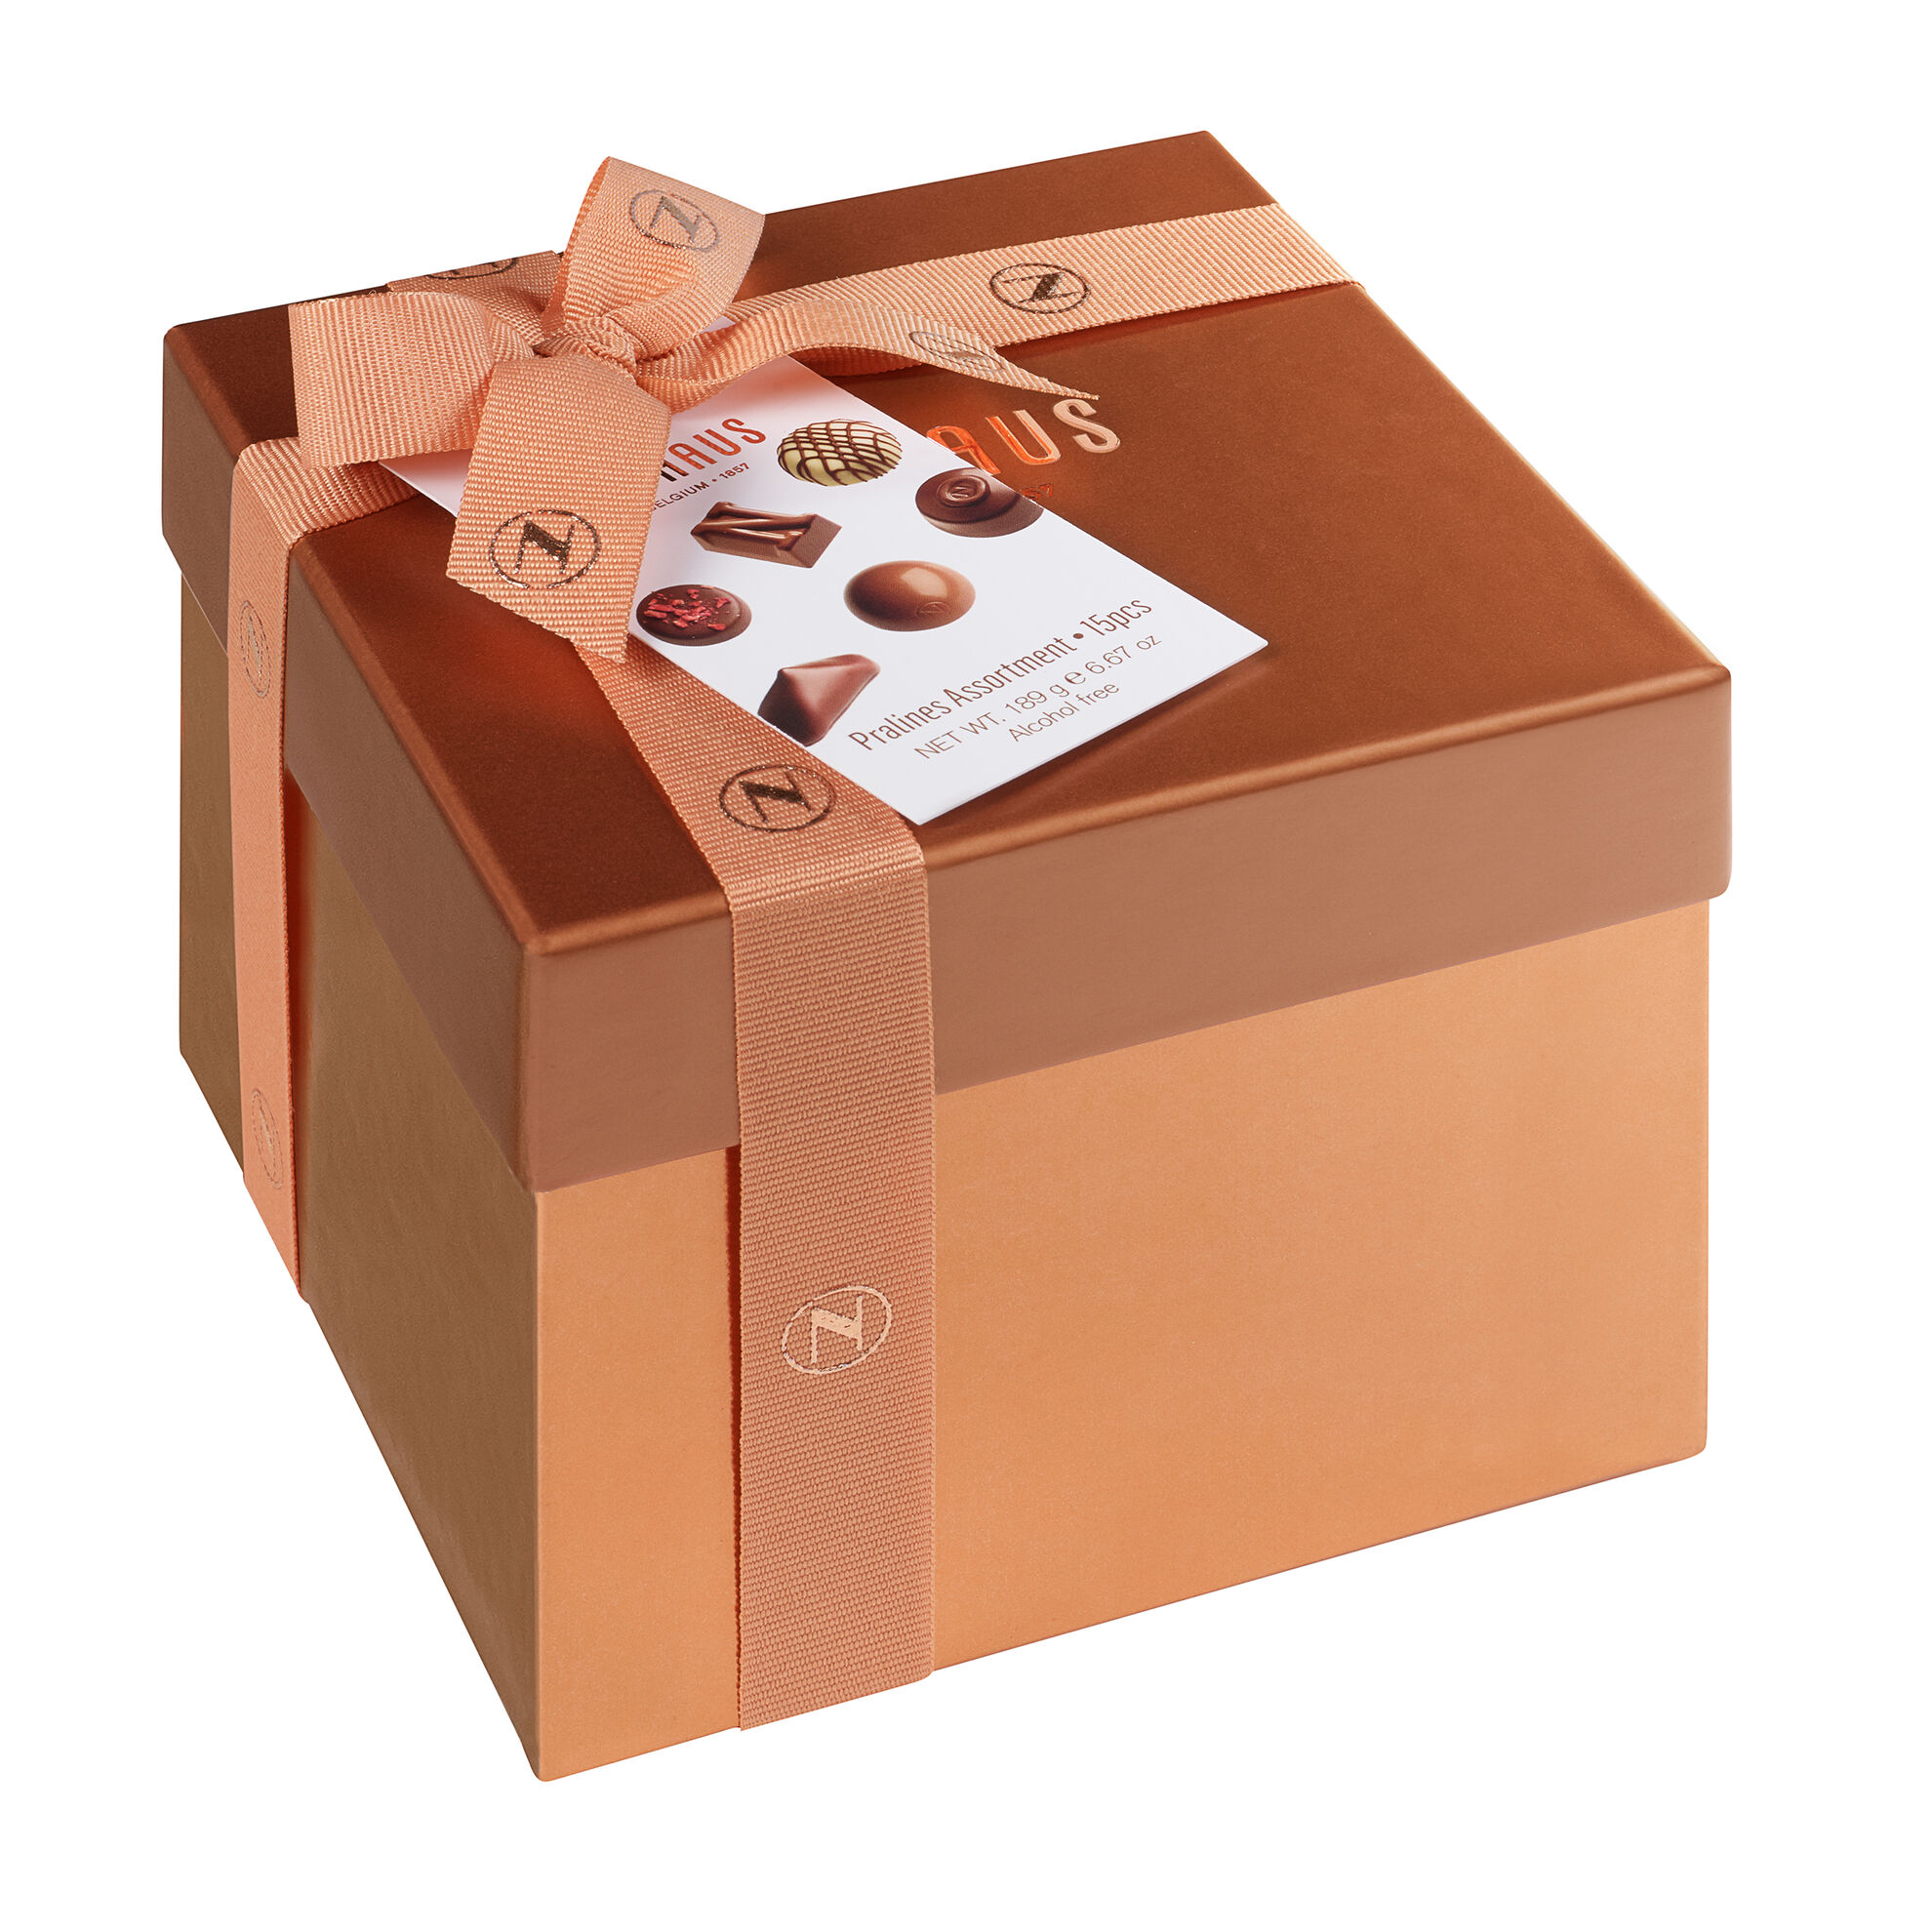 Medium Square Gift Box With Ribbon 15 pcs image number 11